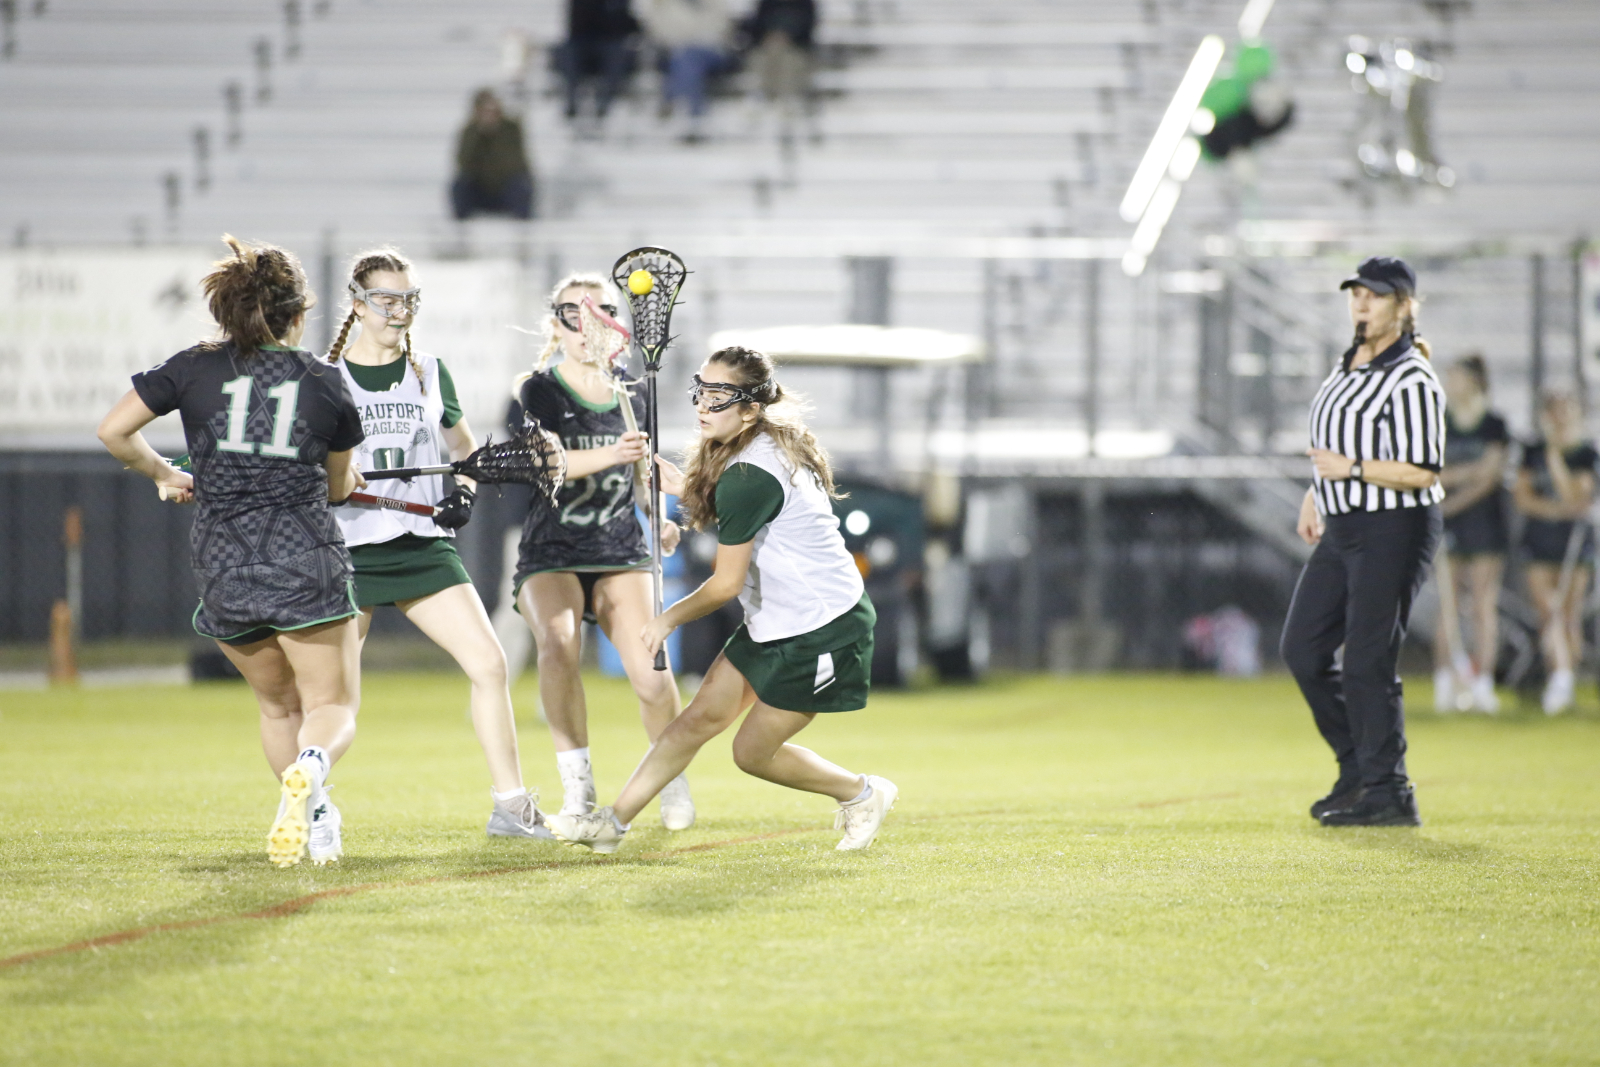 Lady Eagles Lacrosse qualifies for state playoffs for first time